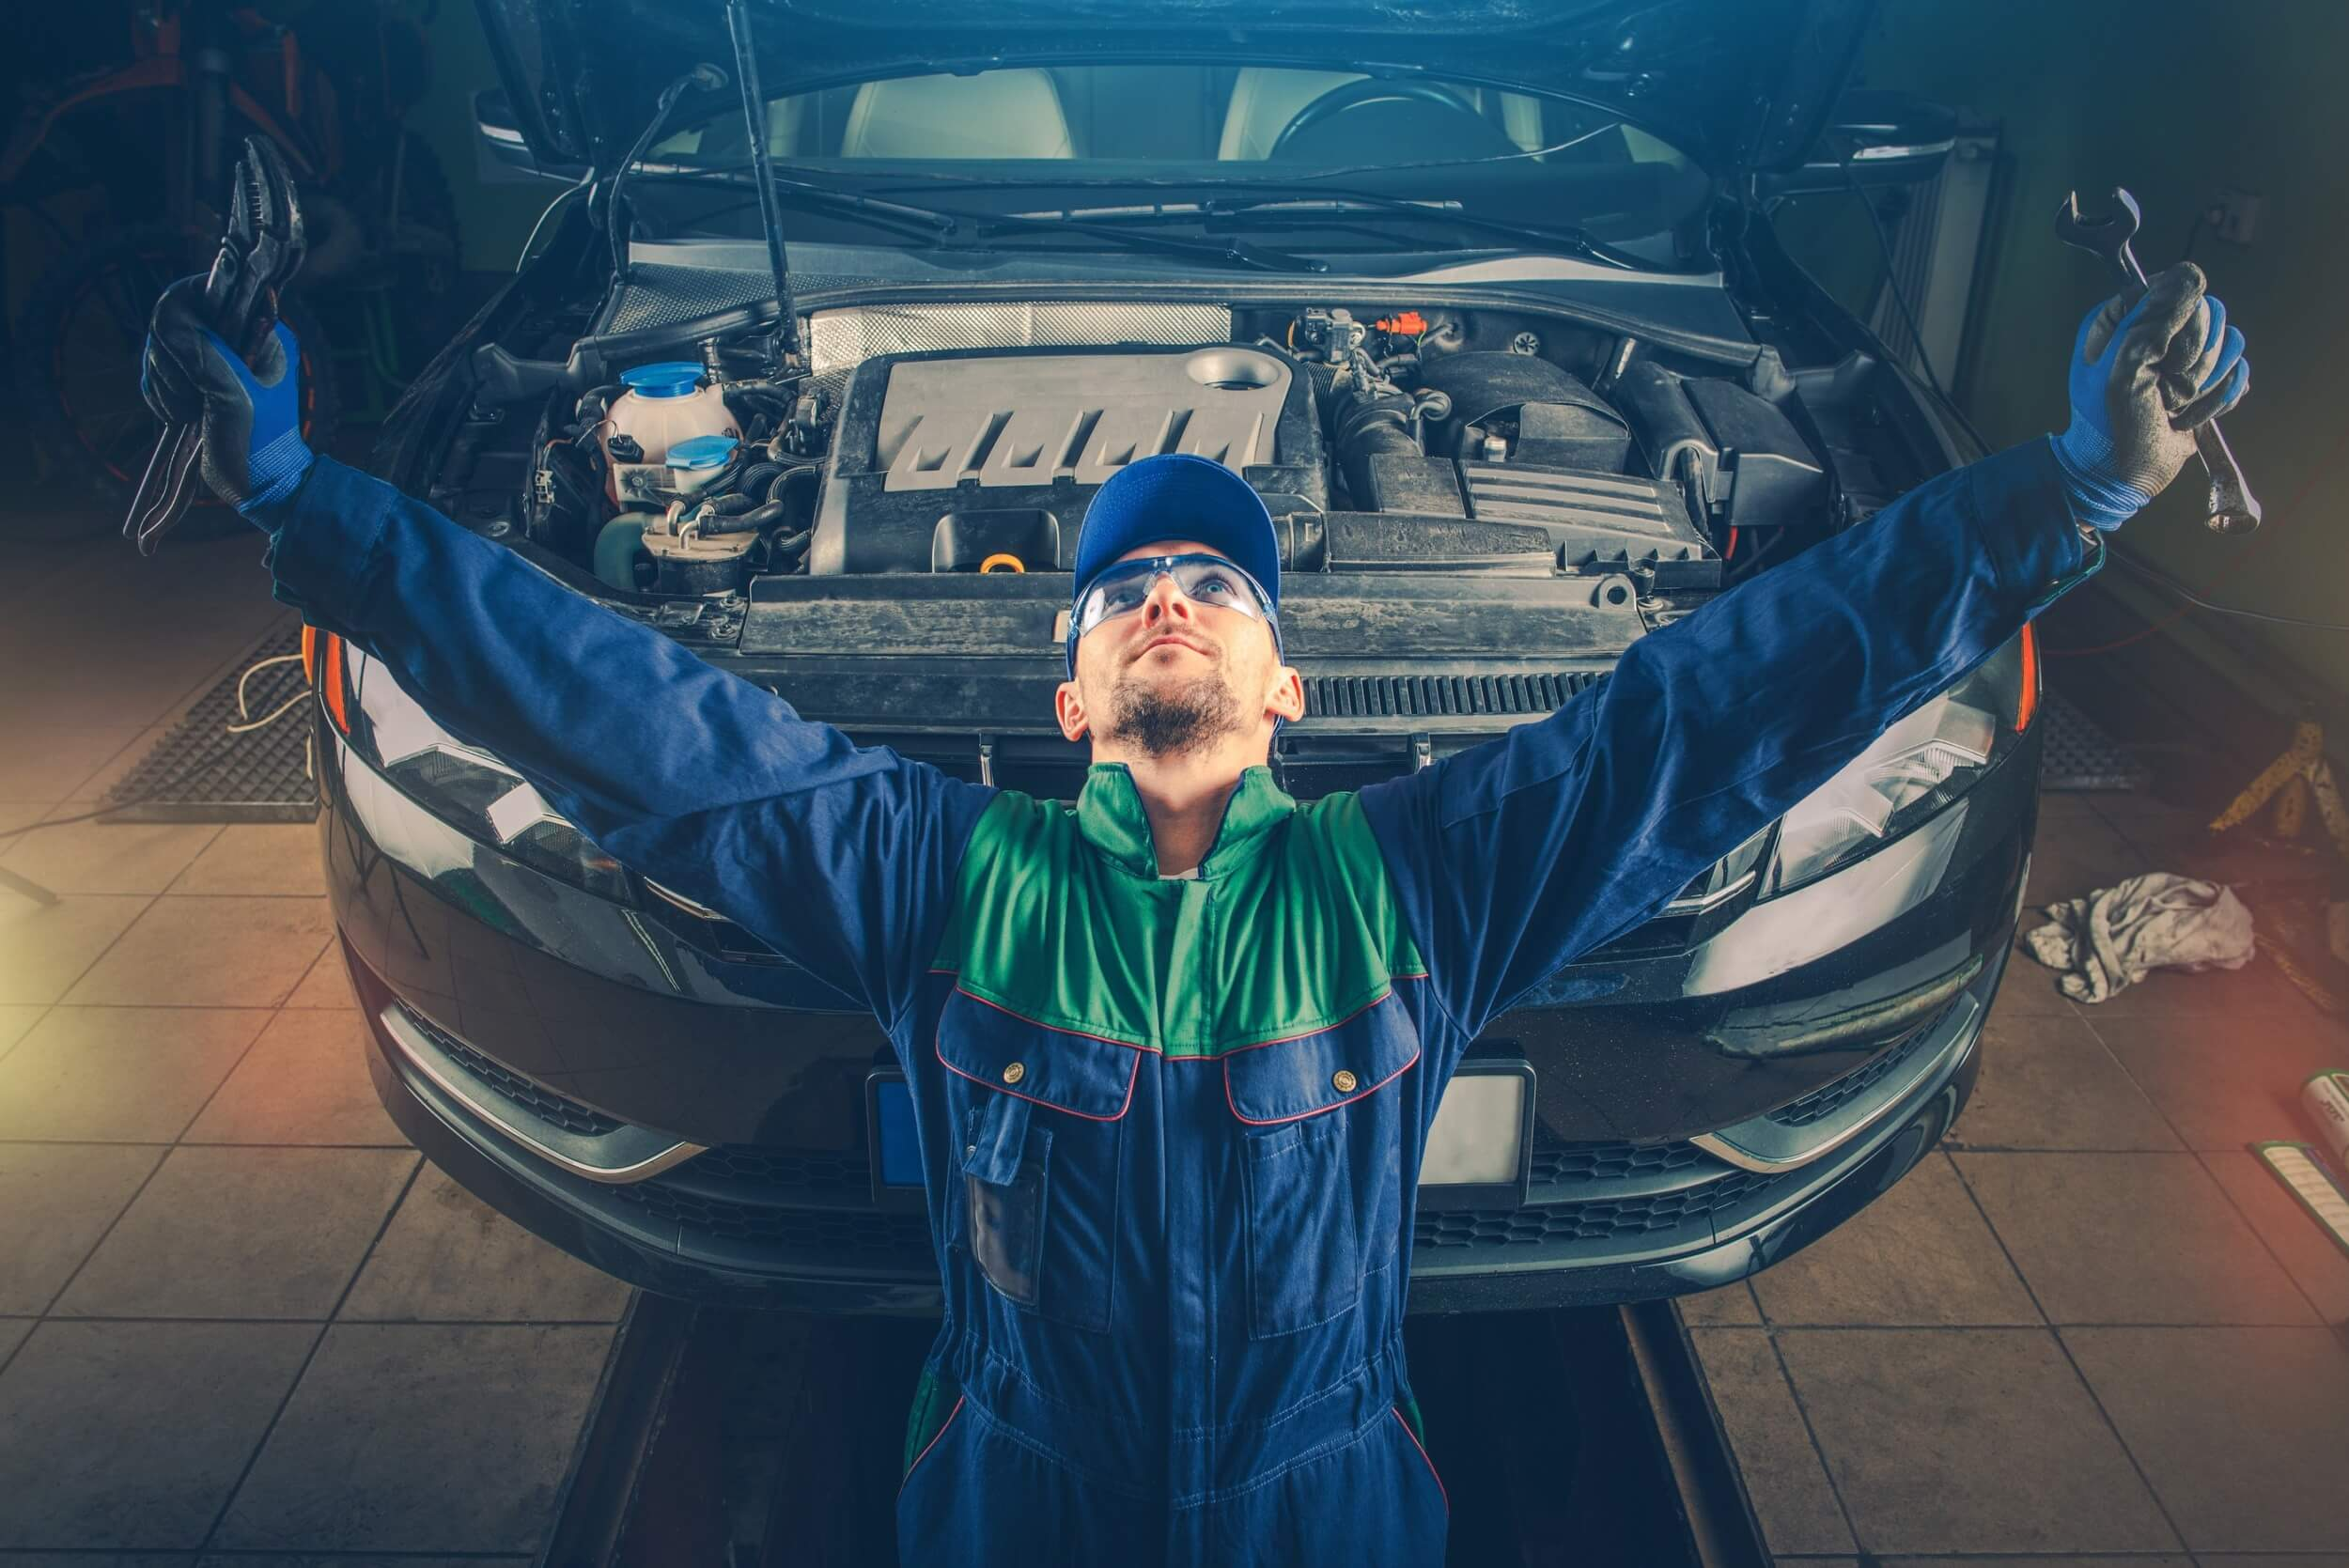 Car service mechanic raising arms in triumph after answering tricky question from a customer